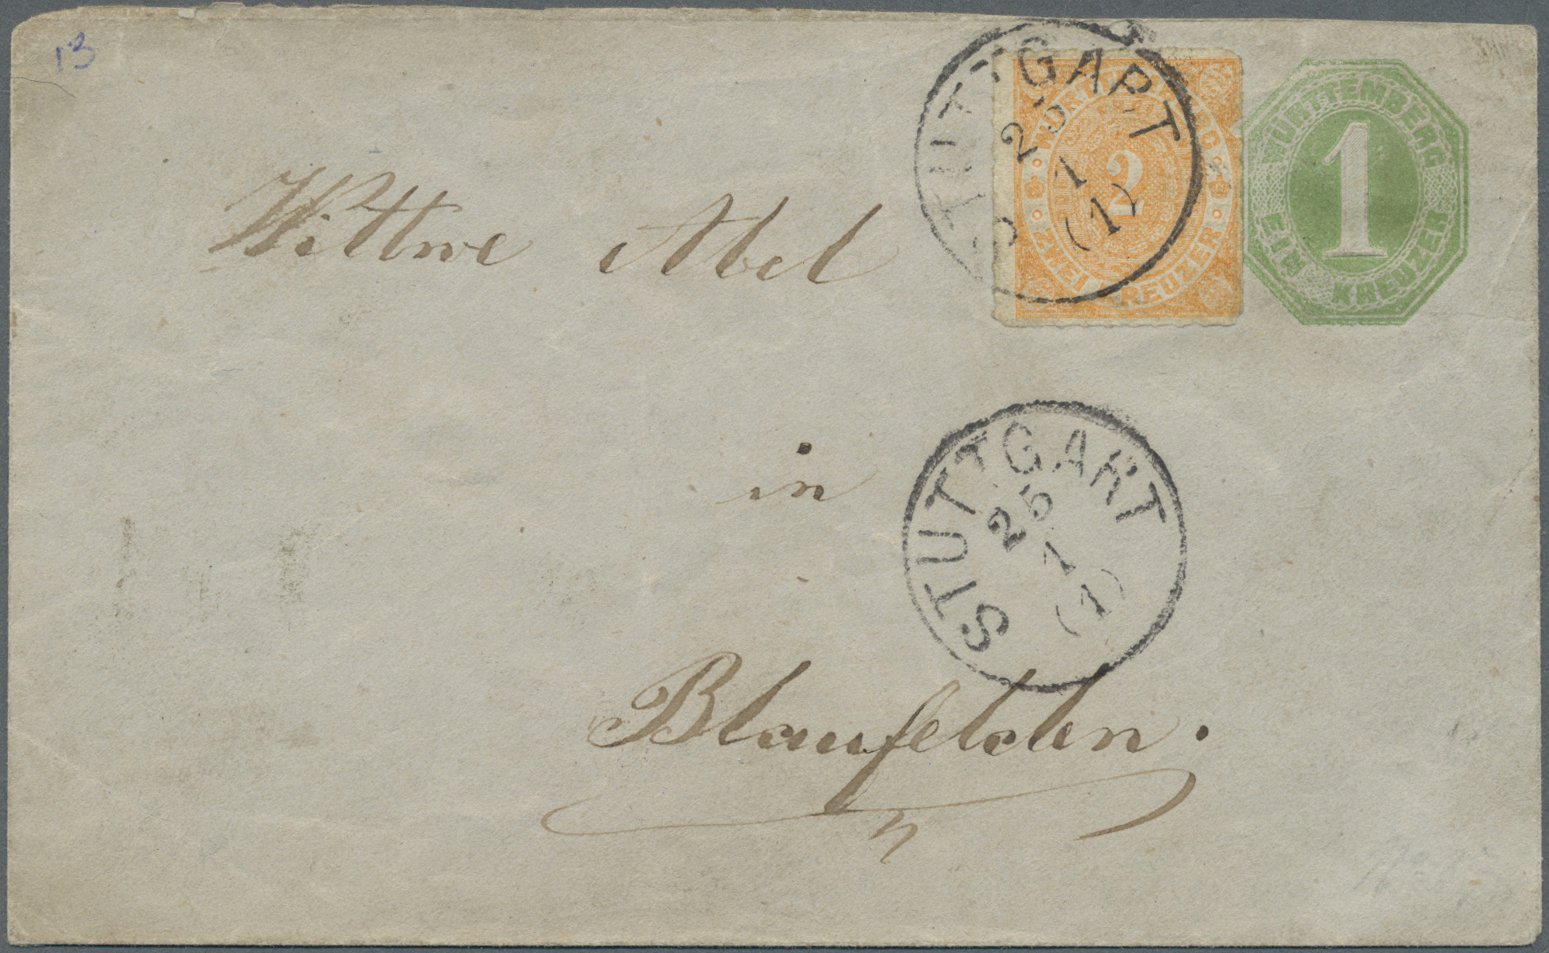 Lot 17669 - württemberg - ganzsachen  -  Auktionshaus Christoph Gärtner GmbH & Co. KG Auction #40 Germany, Picture Post Cards, Collections Overseas, Thematics